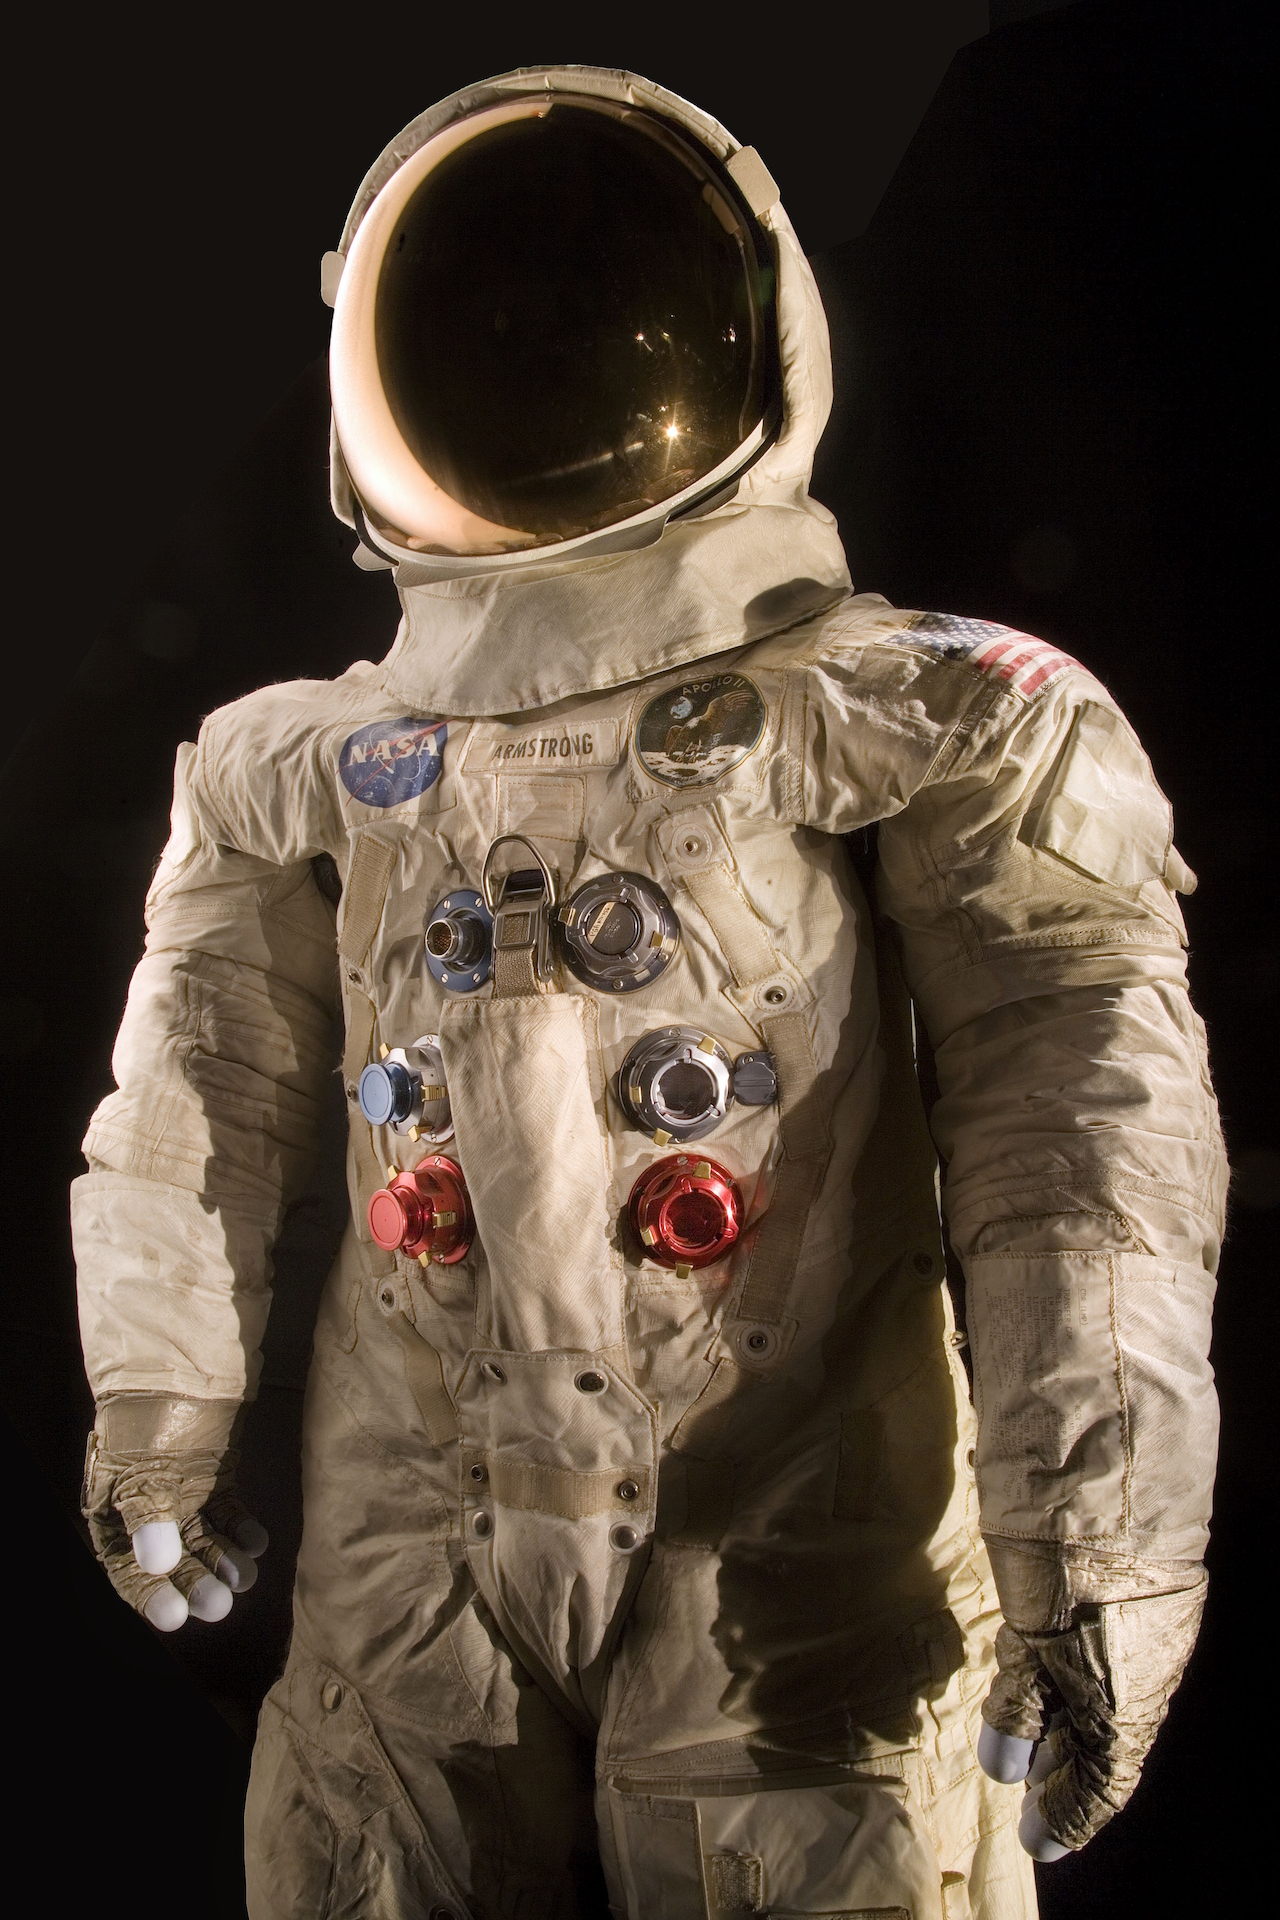 This spacesuit was worn by astronaut Neil Armstrong, Commander of the Apollo 11 mission, which landed the first man on the moon on July 20, 1969. (photo by Eric Long, National Air and Space Museum, Smithsonian Institution)